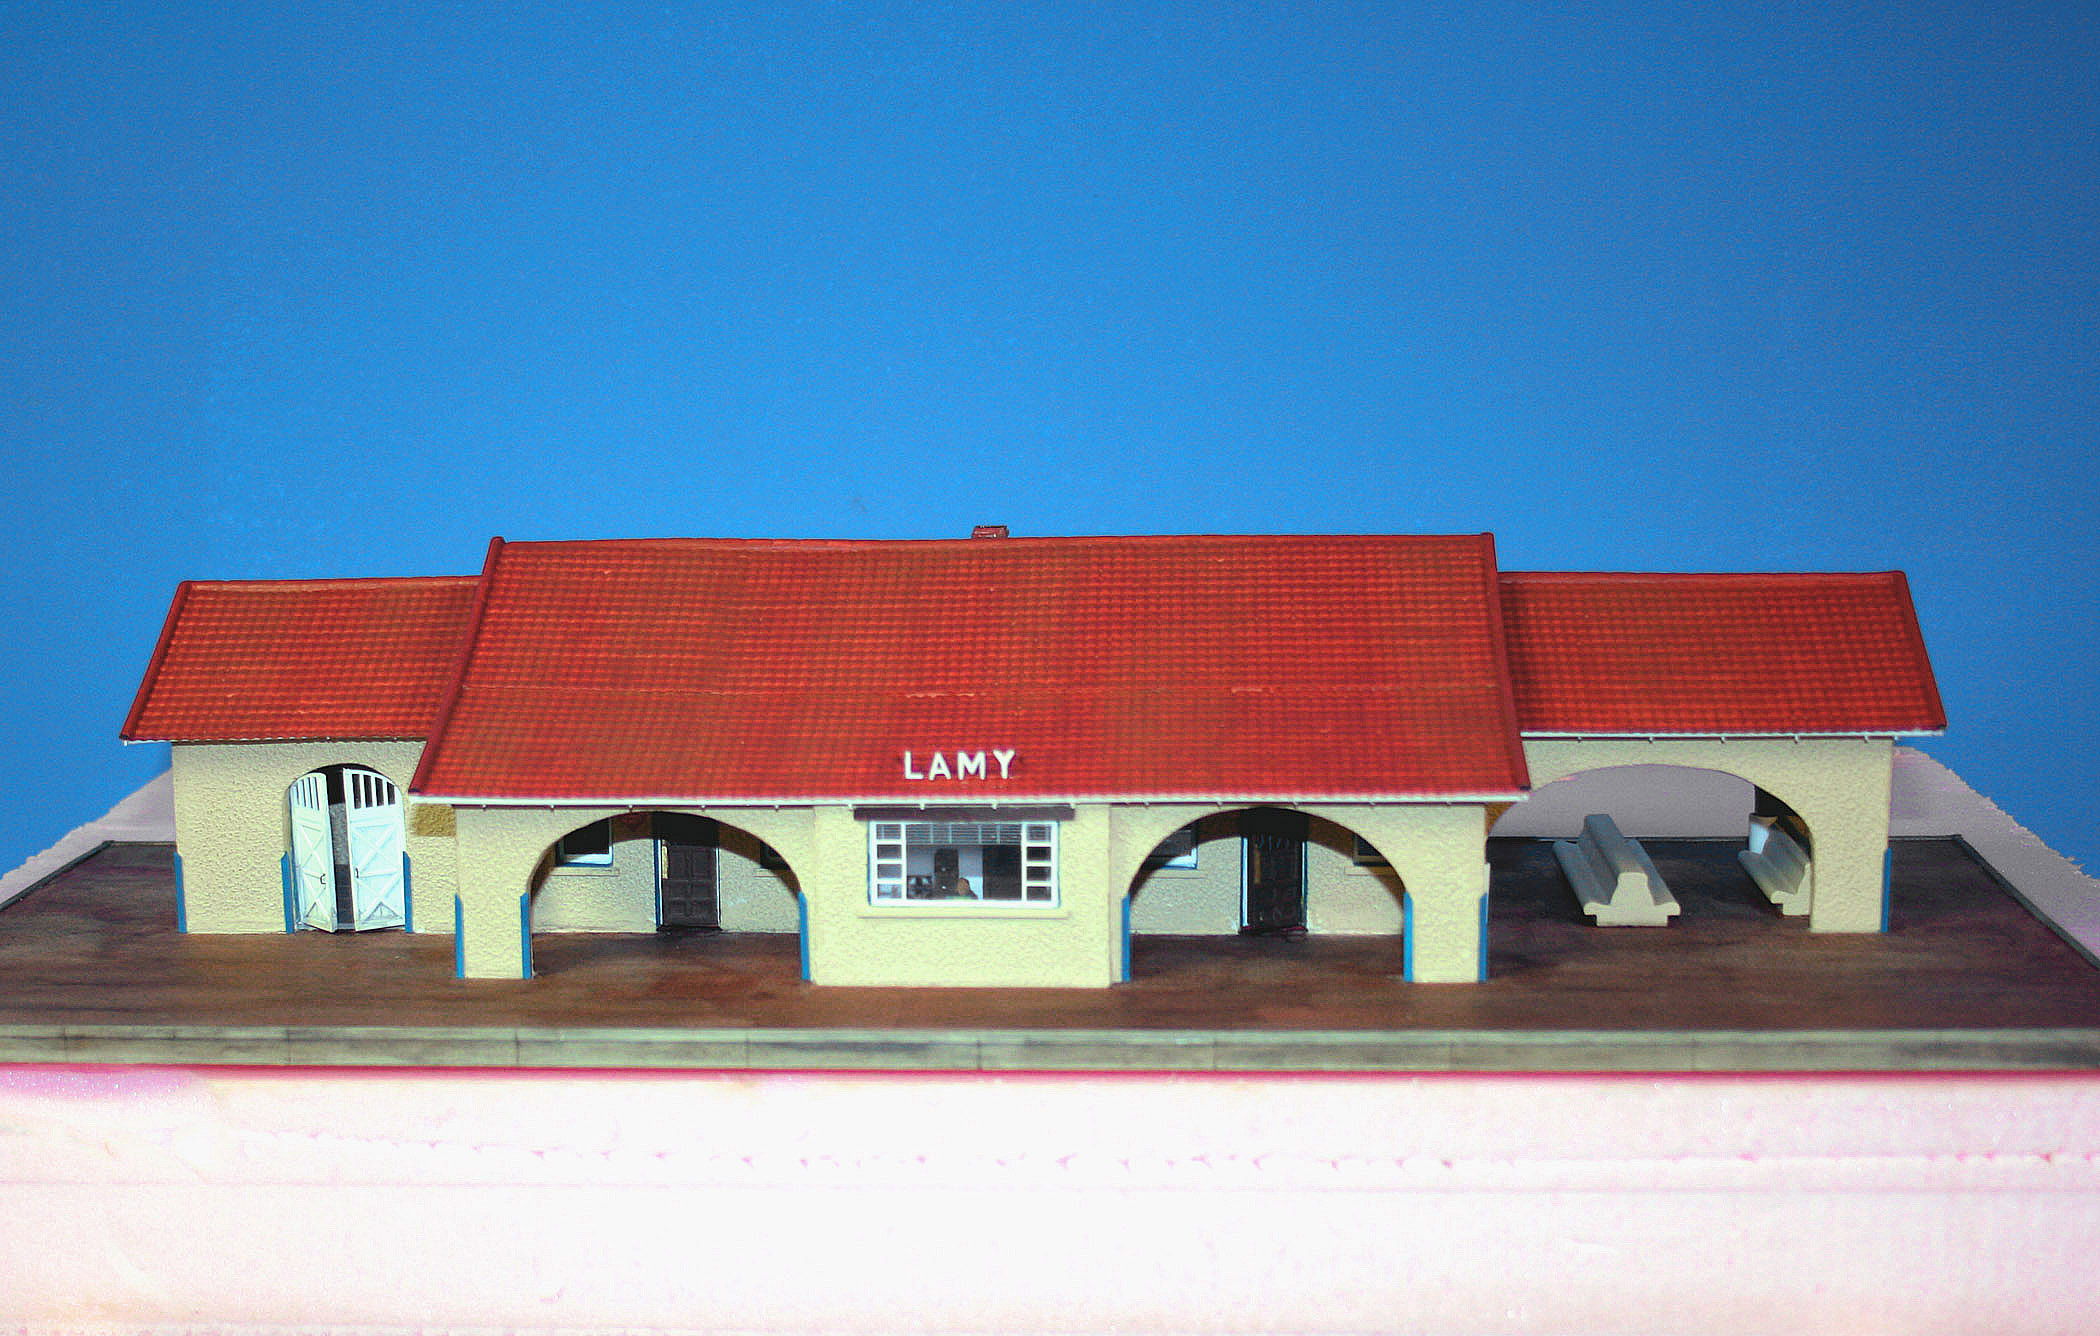 Lamy Depot NM HO scale model